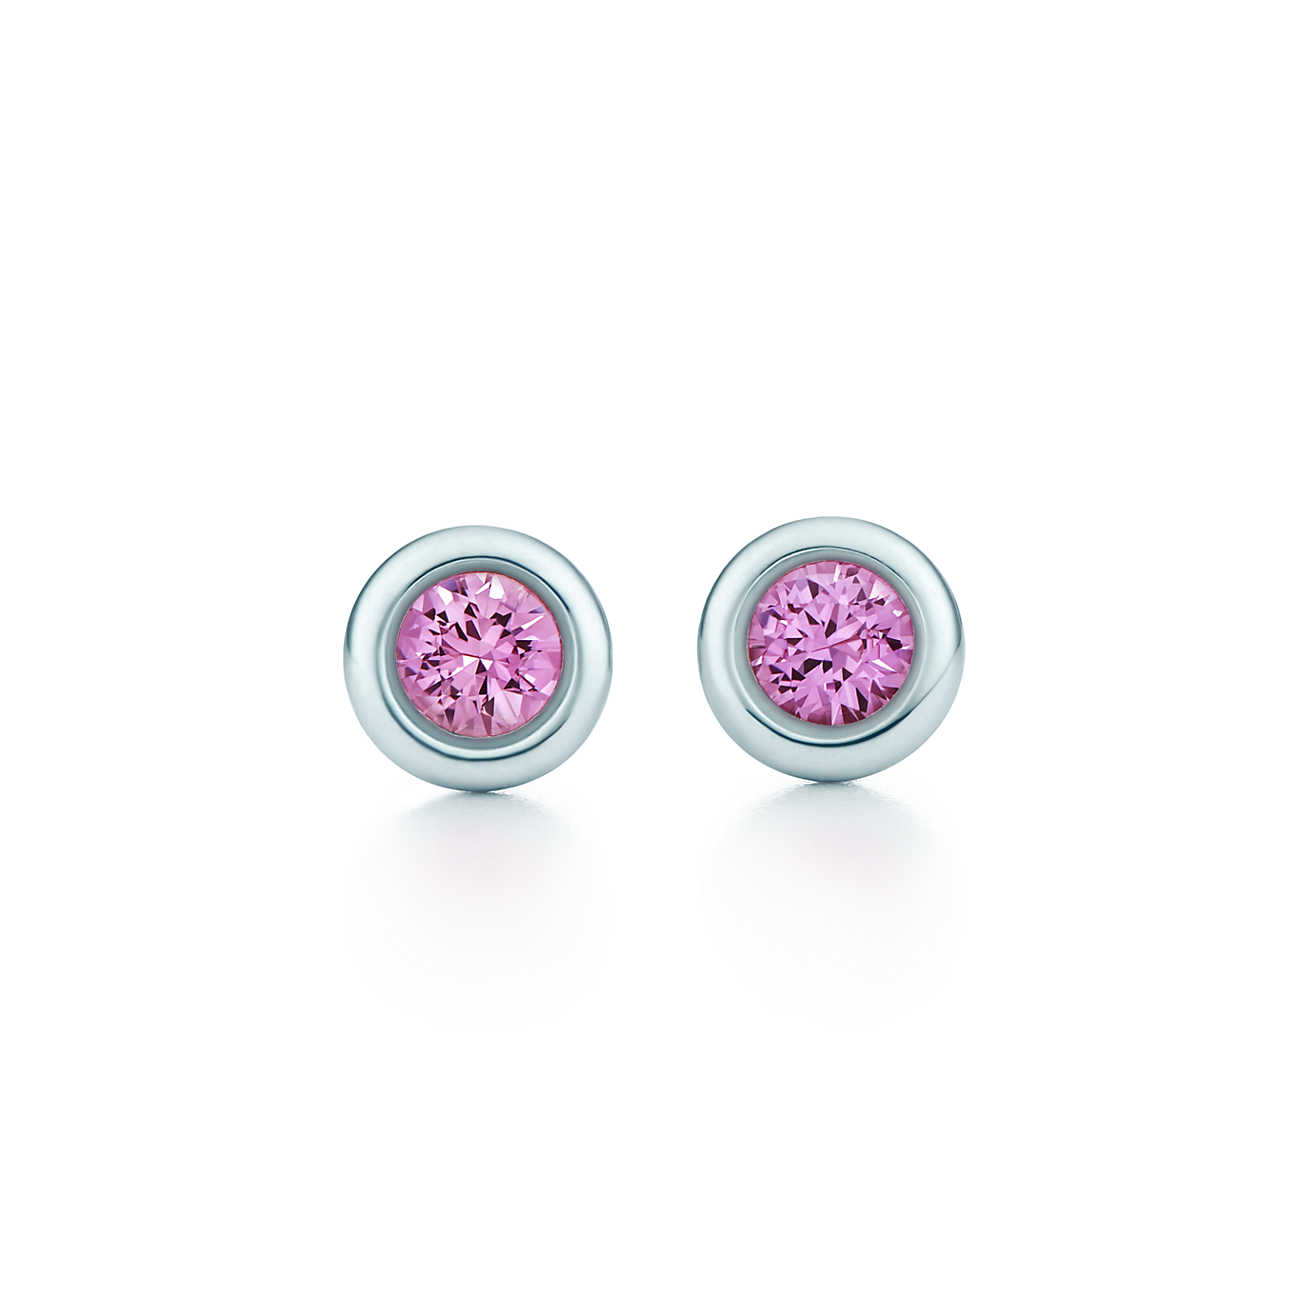 elsa-peretticolor-by-the-yard-earrings-32535534_941321_ED